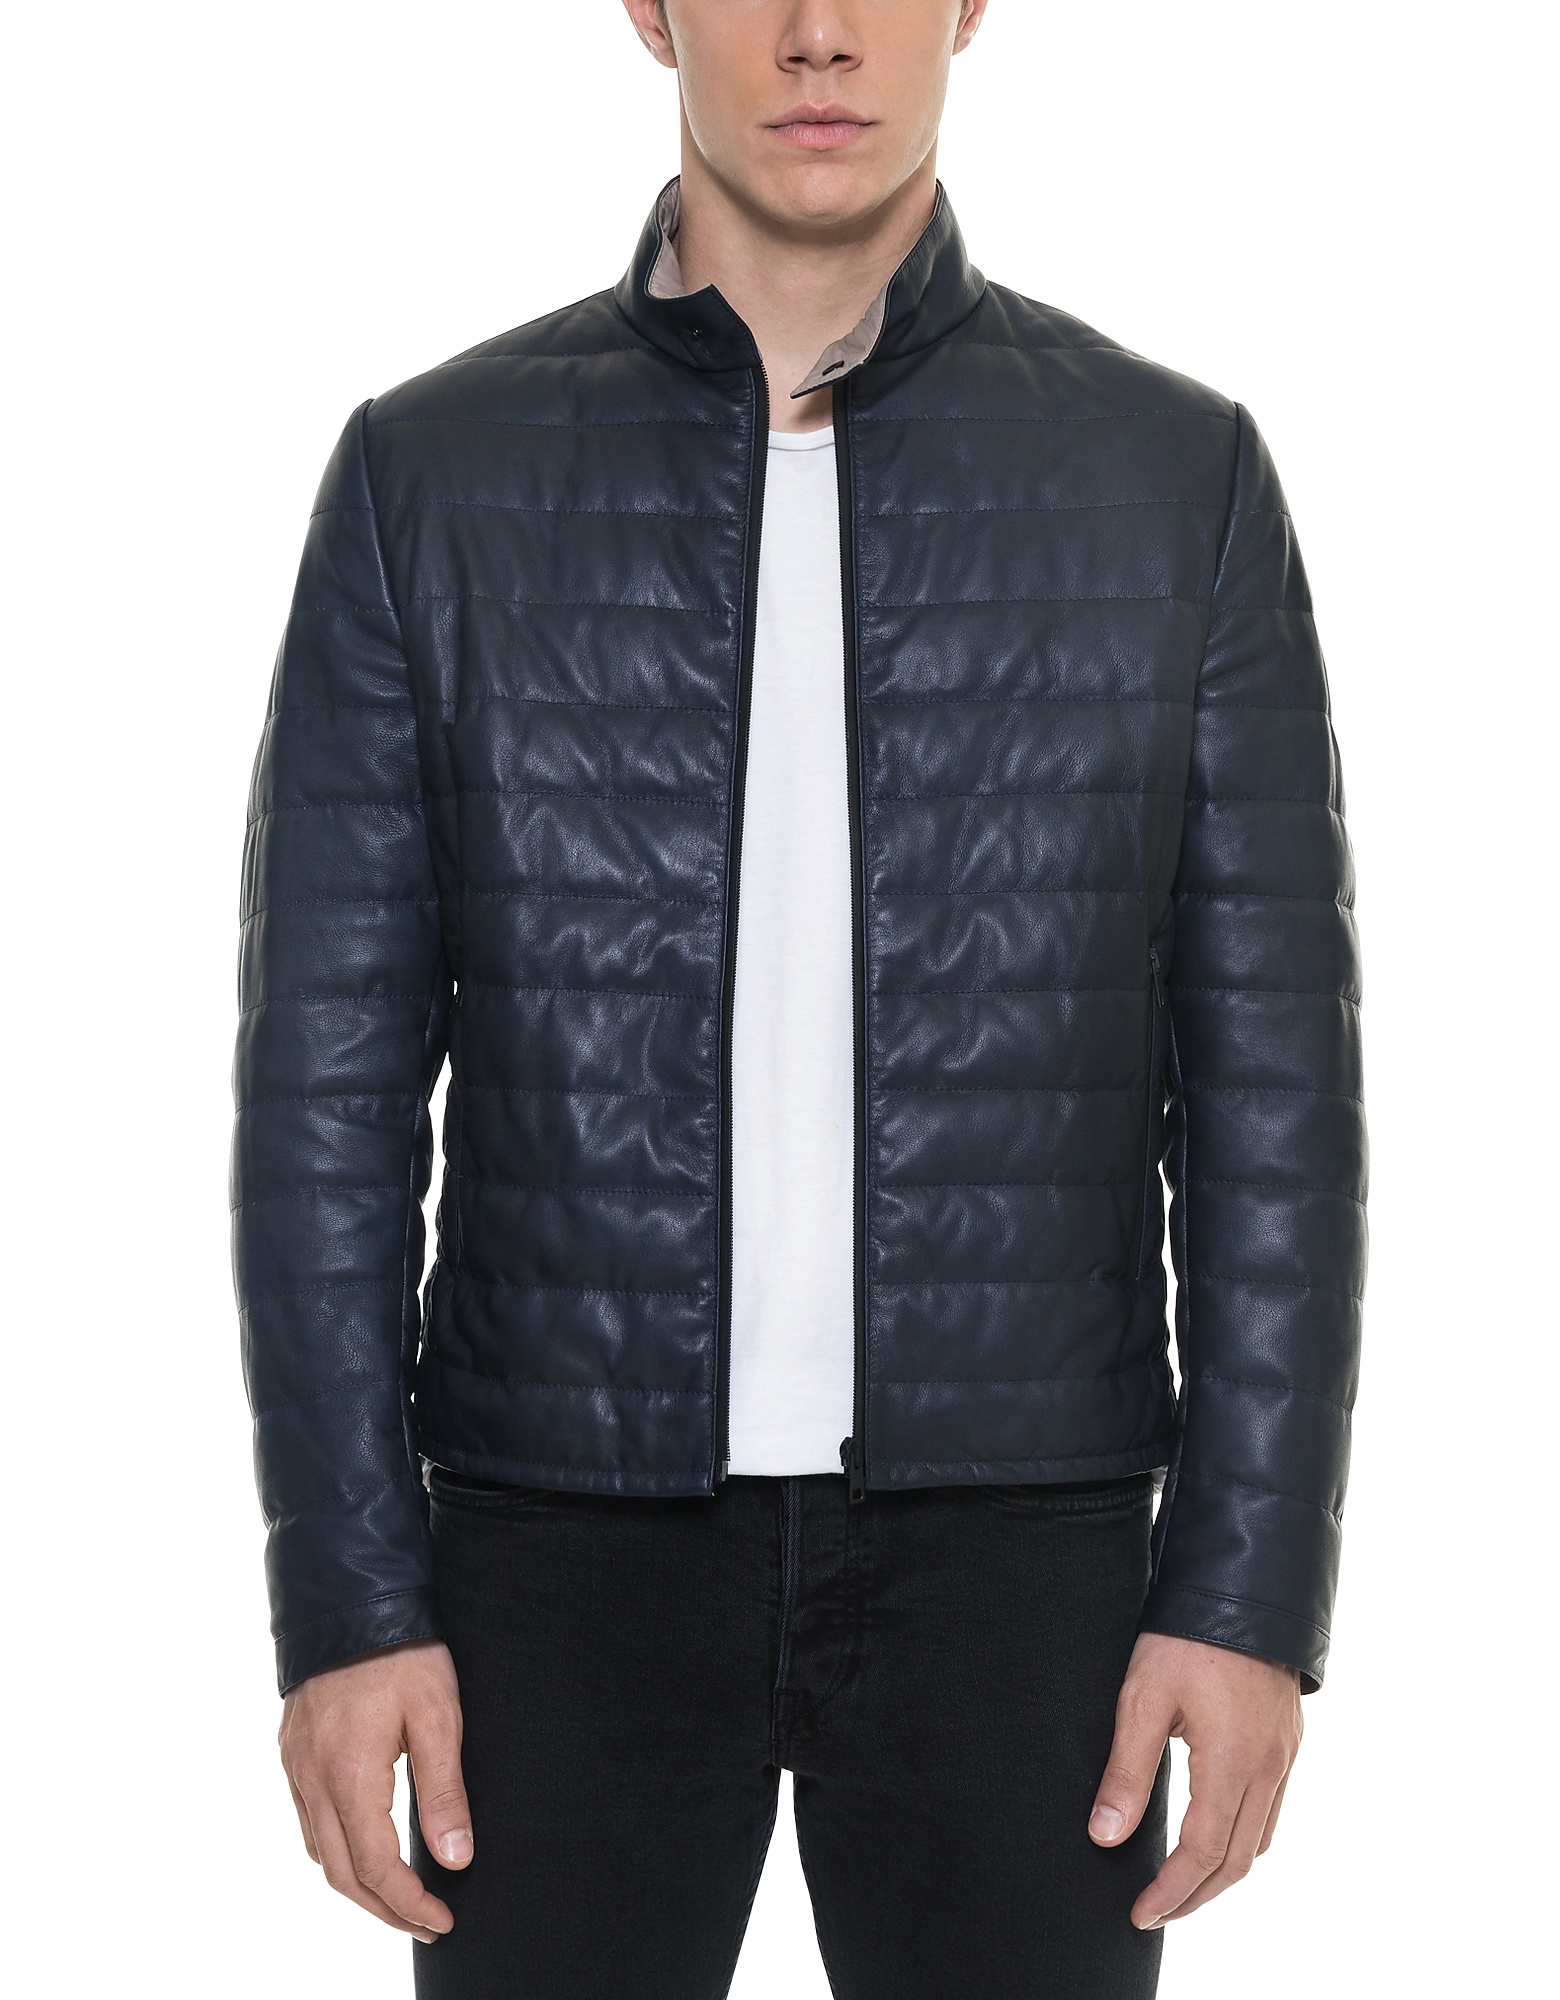 Dark Blue Quilted Leather Men's Jacket